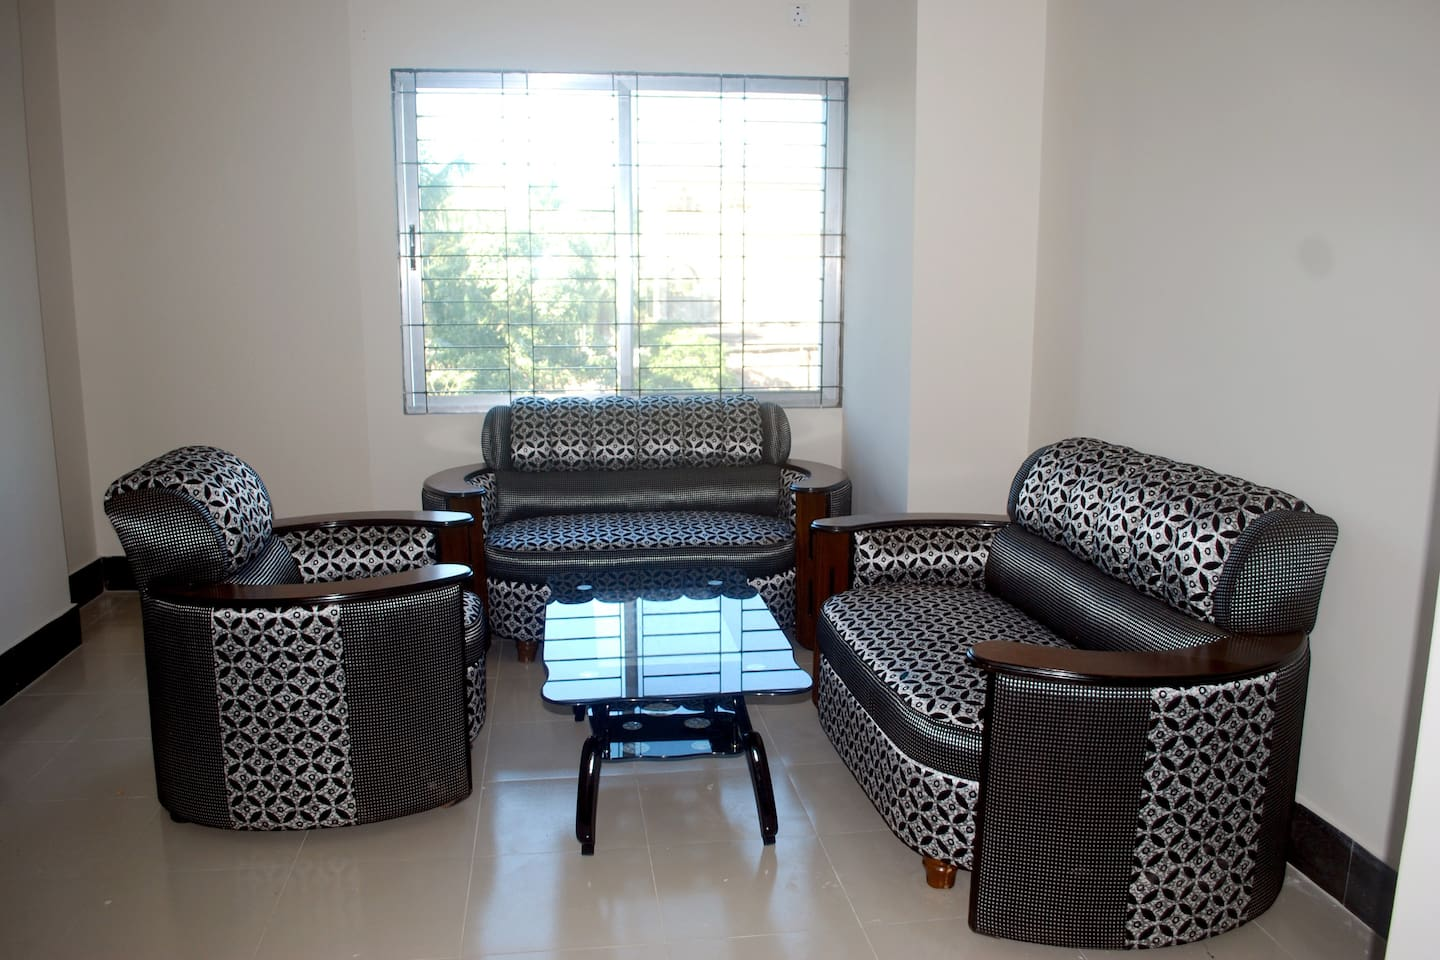 Stylish 3 piece sofa & glass table with mosquito protection on all windows.